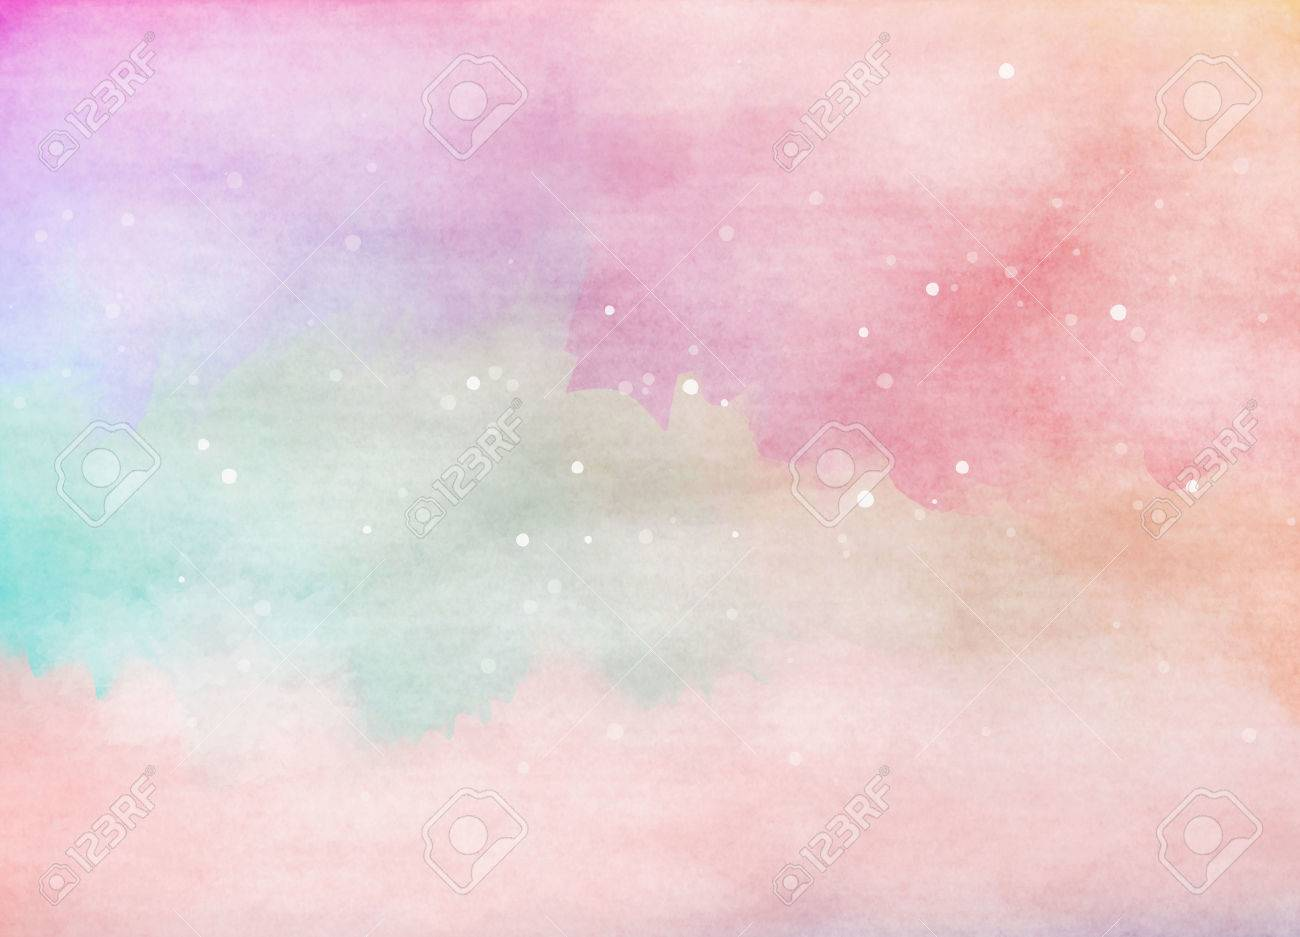 Abstract colorful watercolor background. Digital art painting. - 51936430